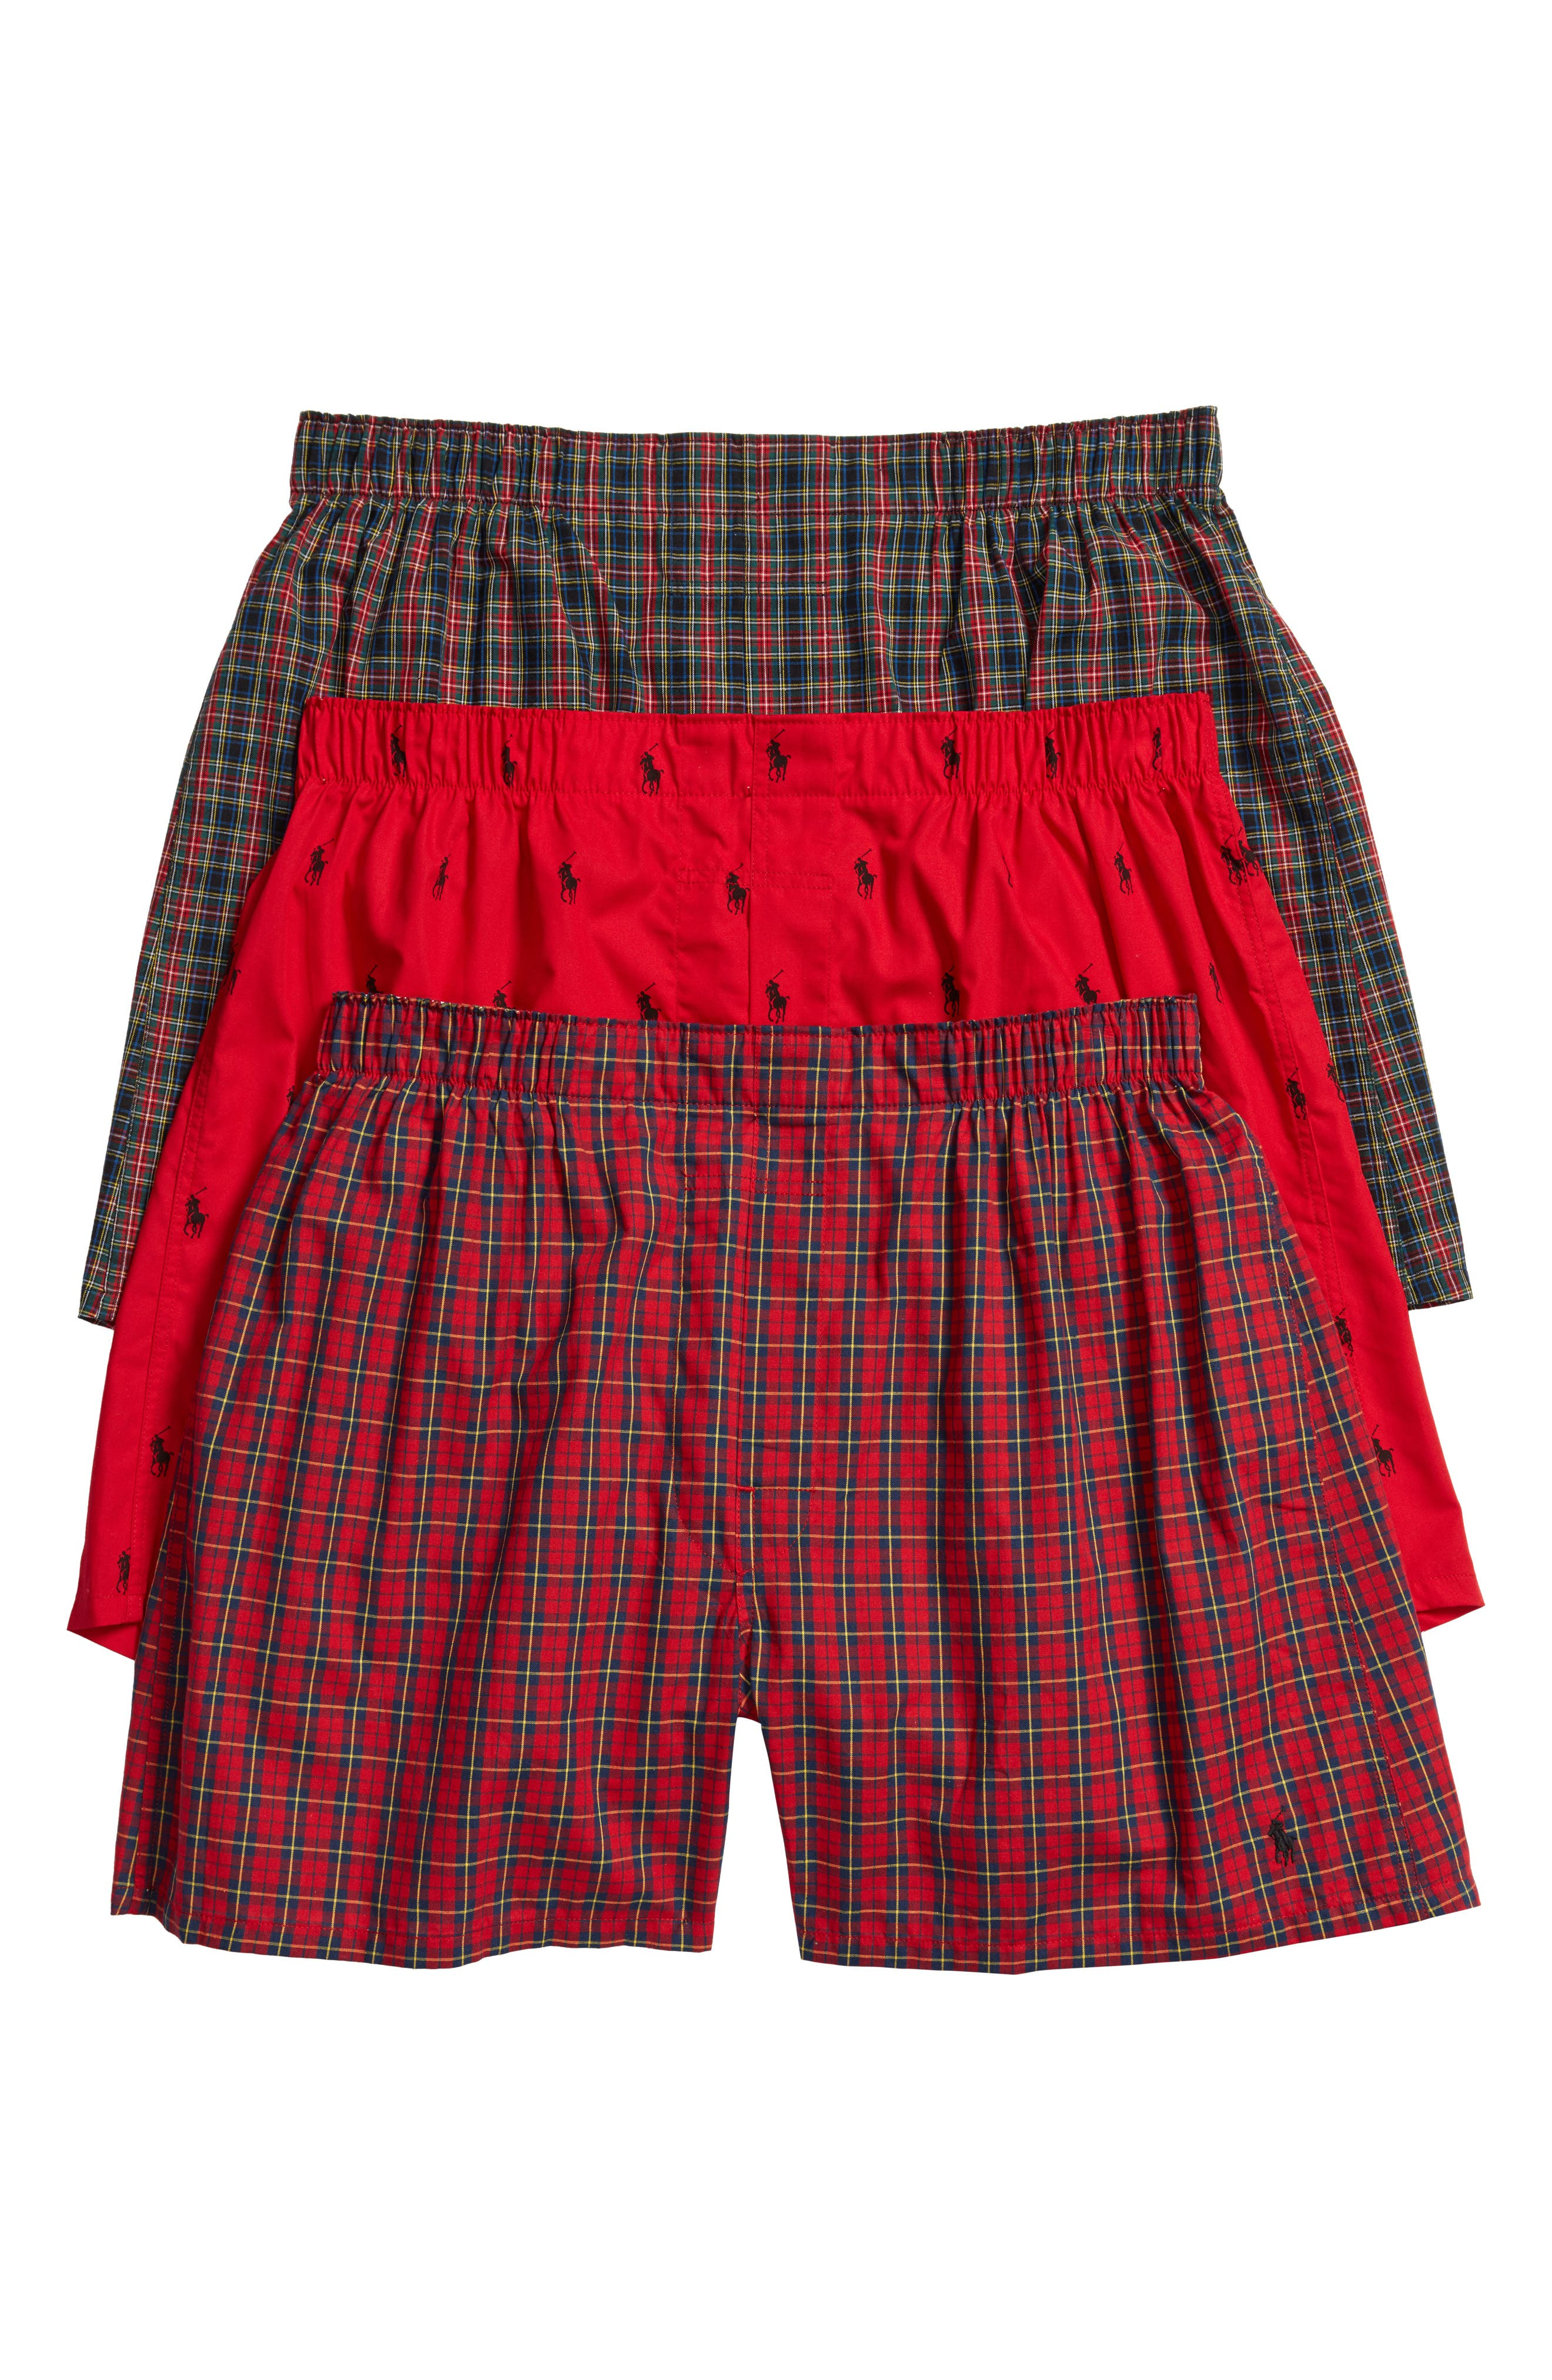 Assorted 3-Pack Woven Cotton Boxers,                             Main thumbnail 4, color,